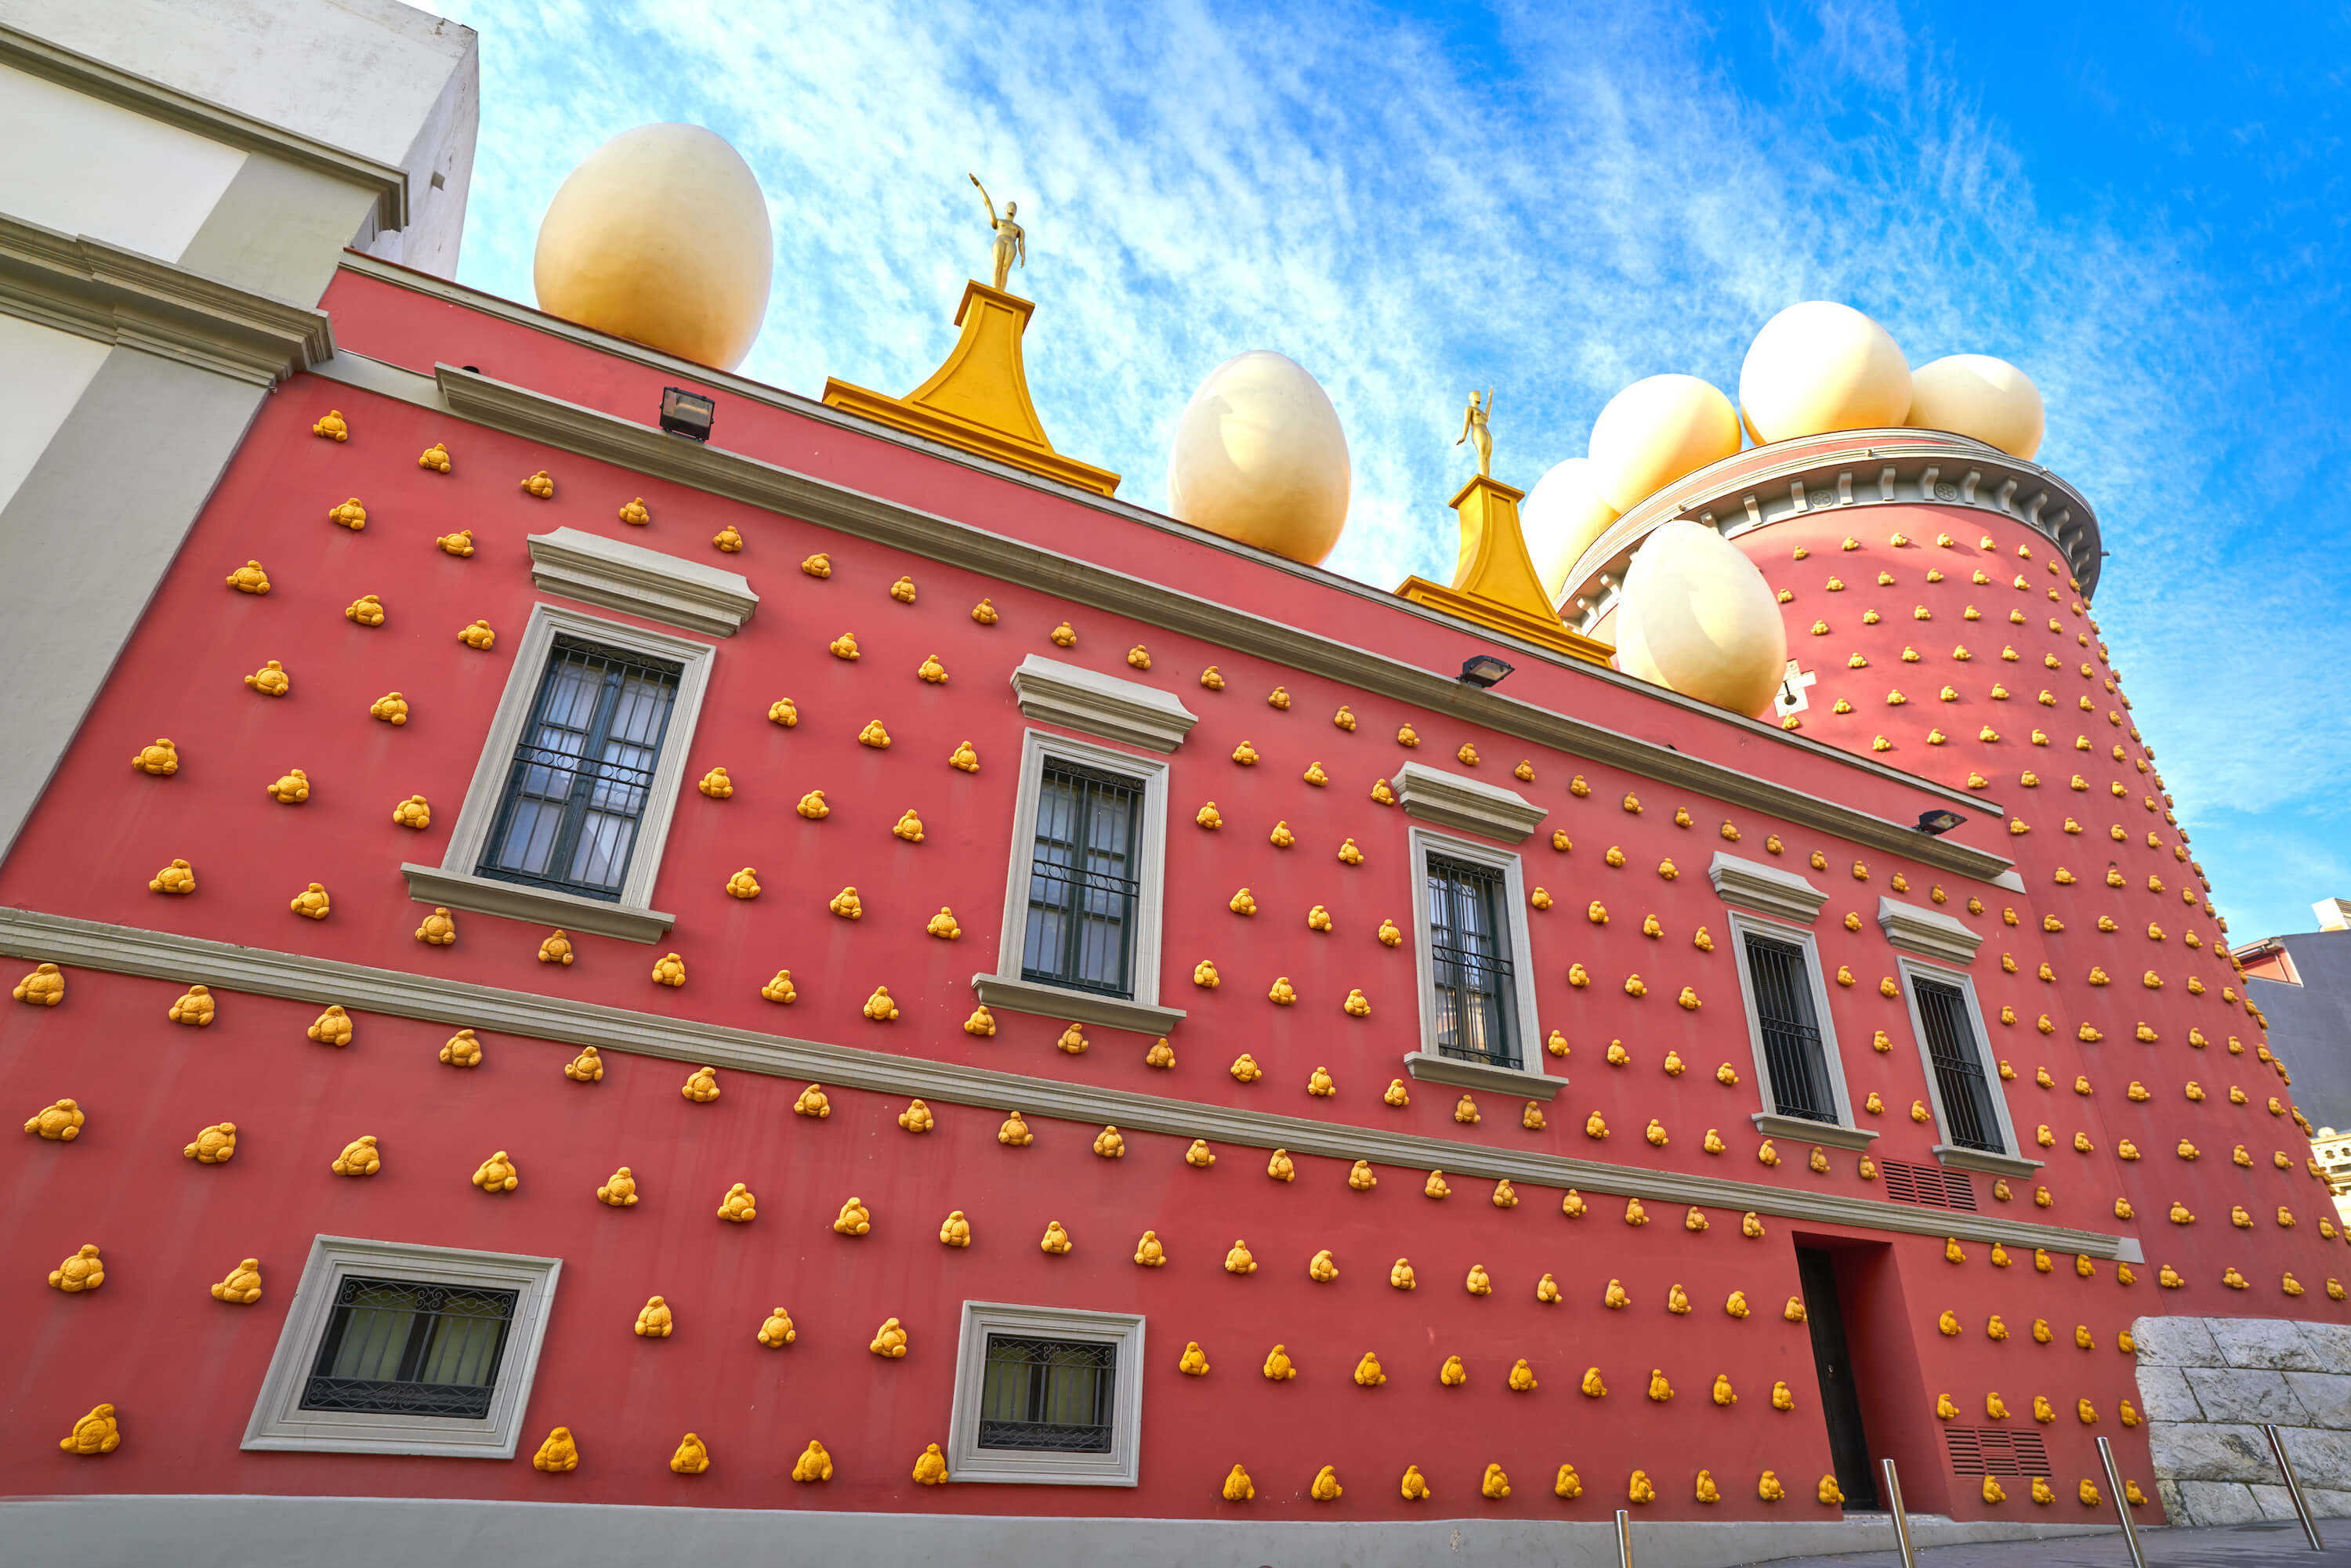 Best Day Trips From Barcelona - Dali Museum, Figueres